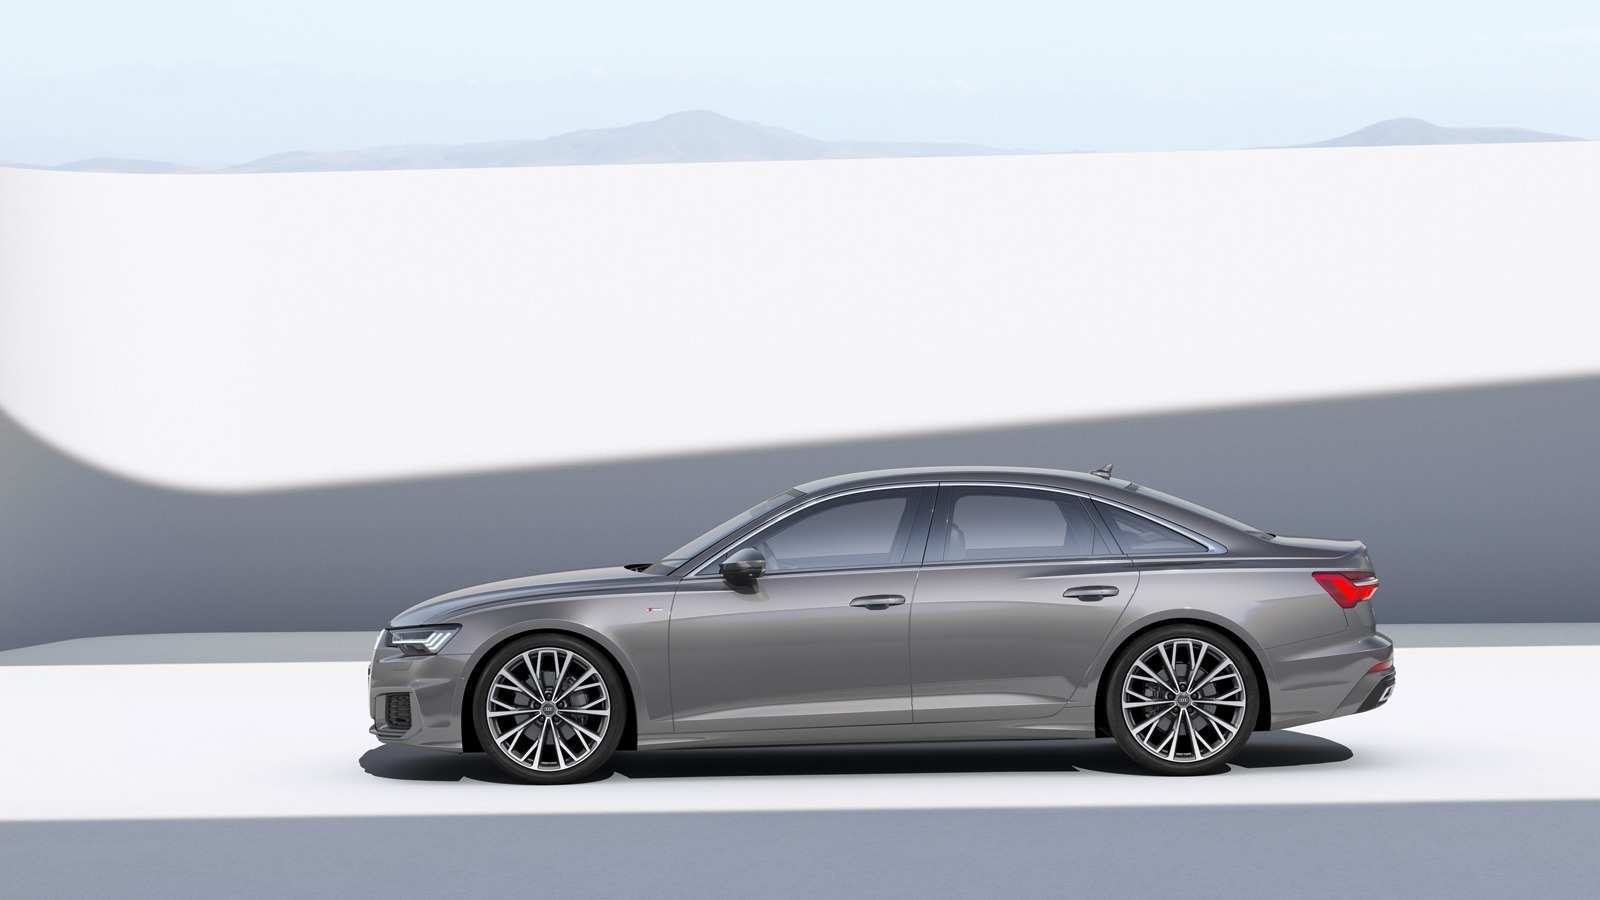 82 The Best 2019 Audi A6 Comes Release Date